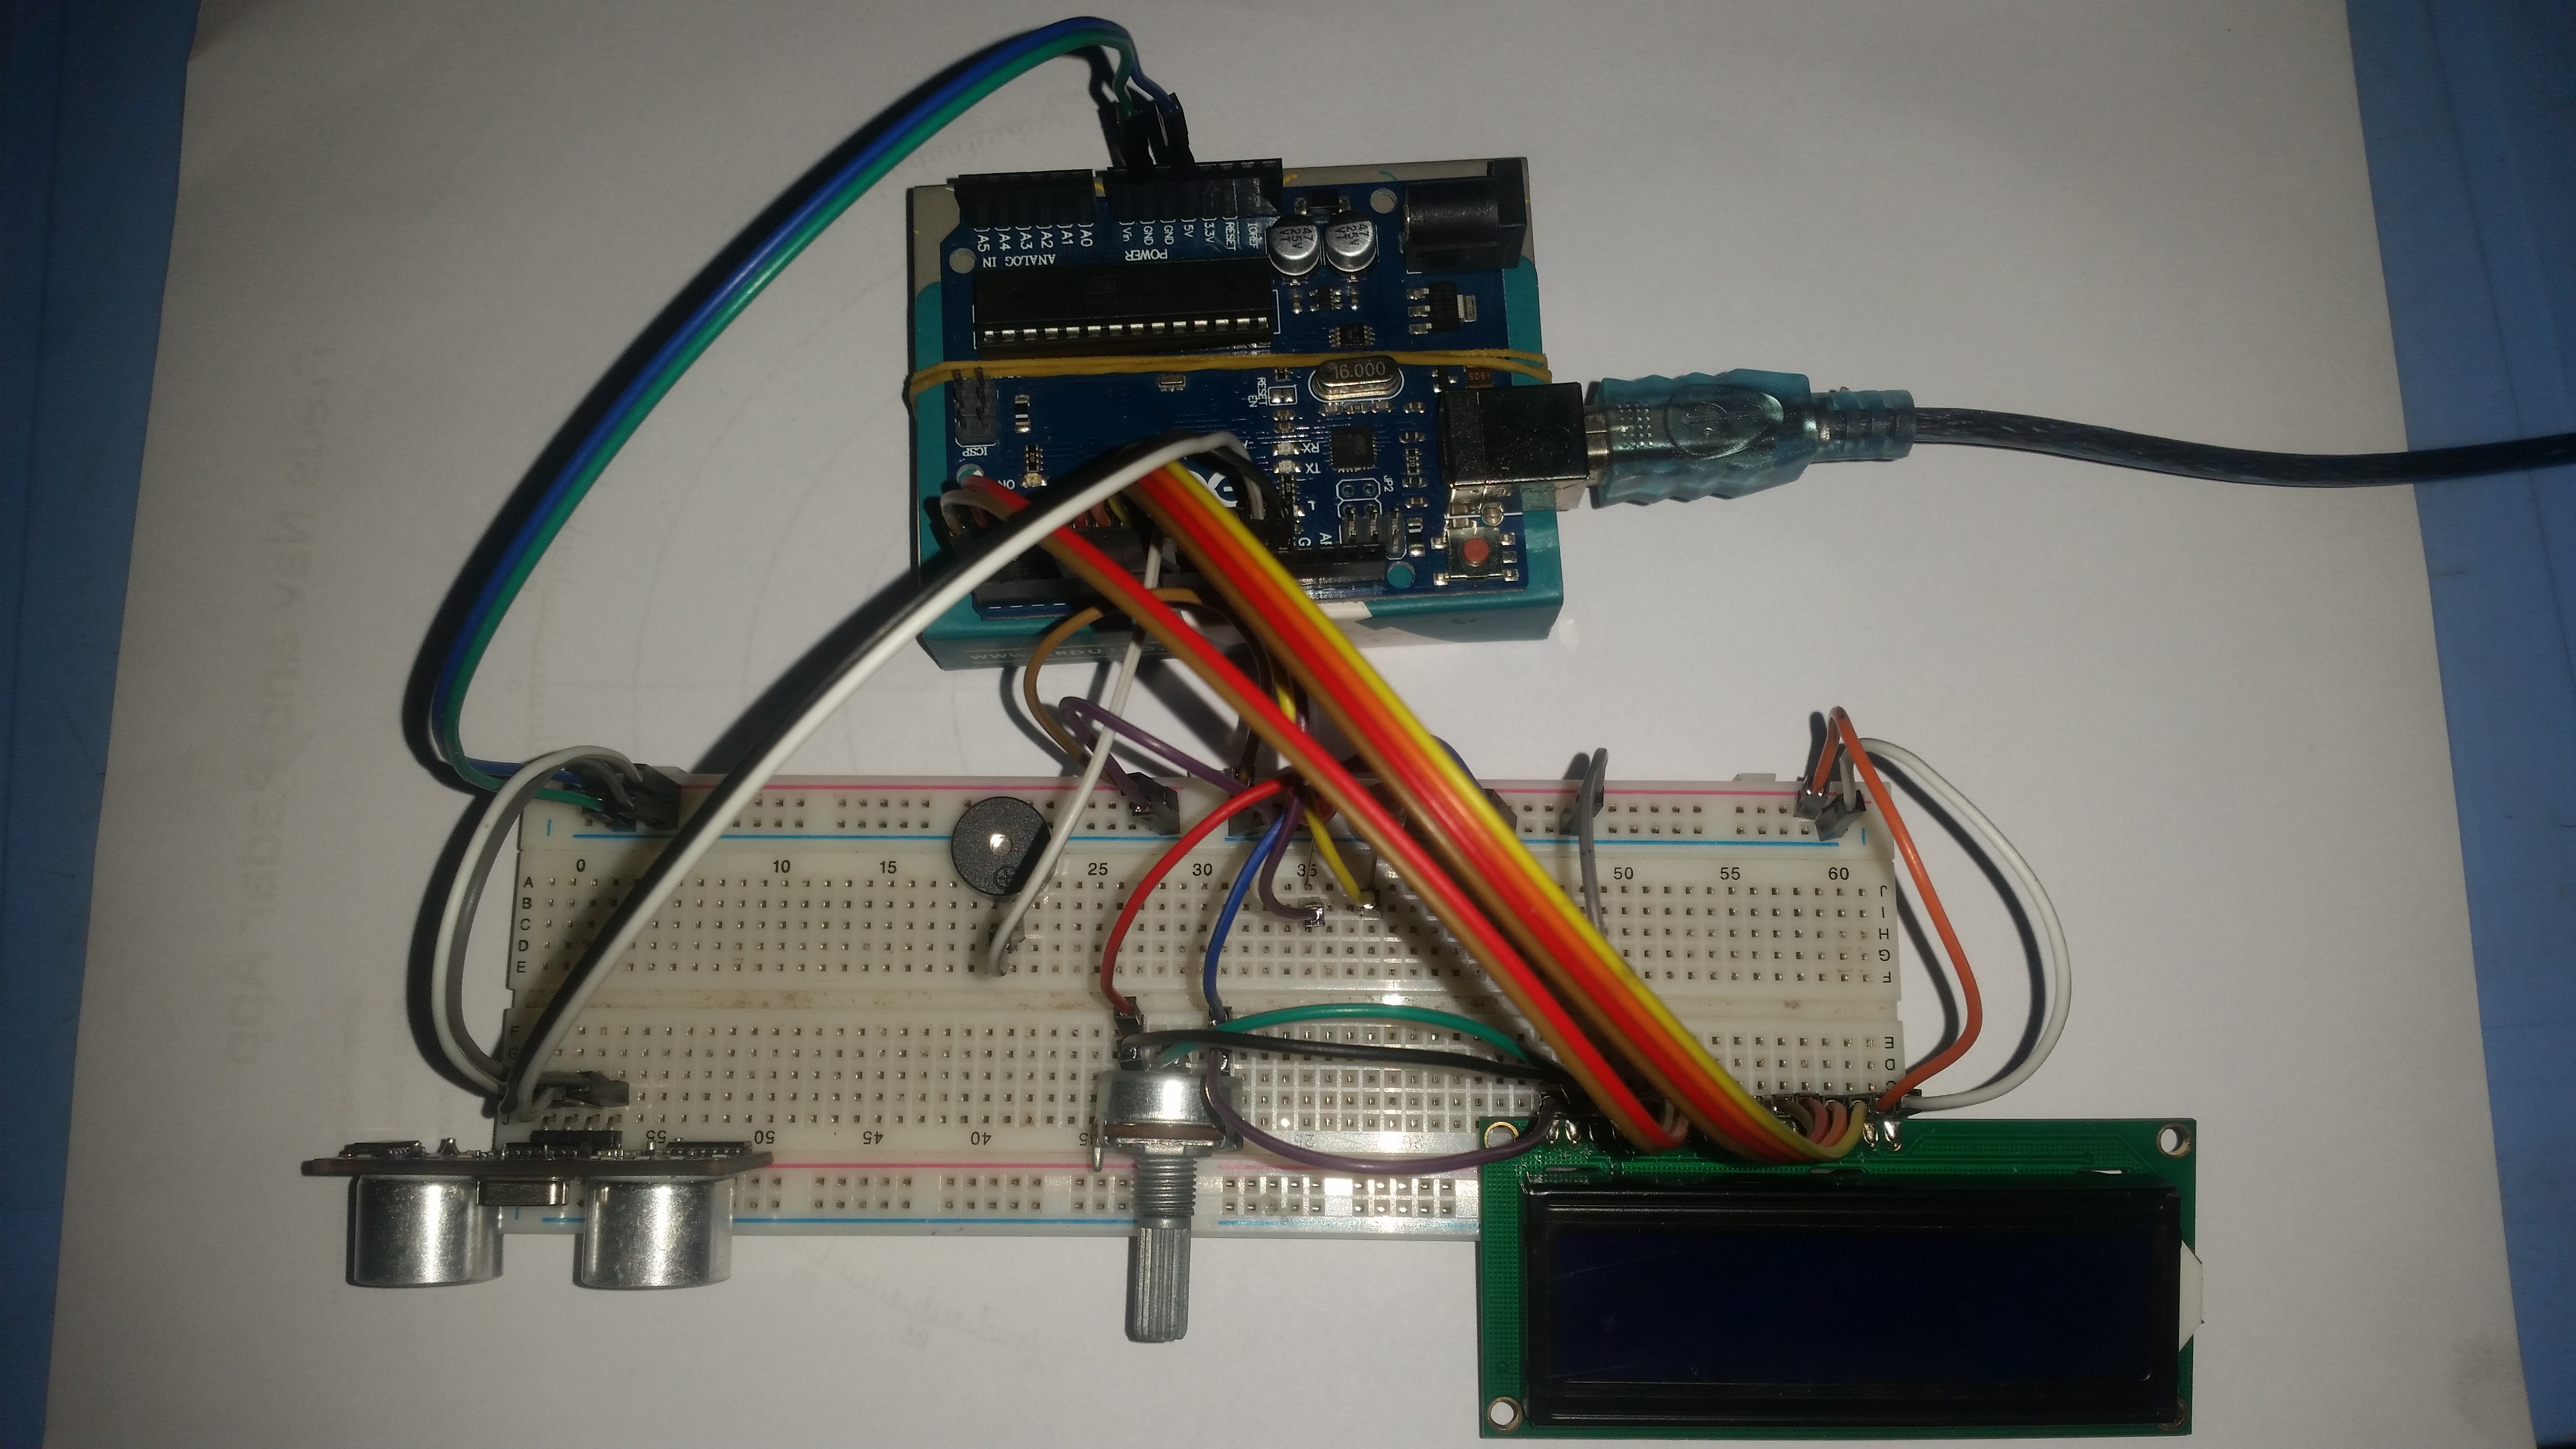 Ultrasonic doorbell system that detects visitors and